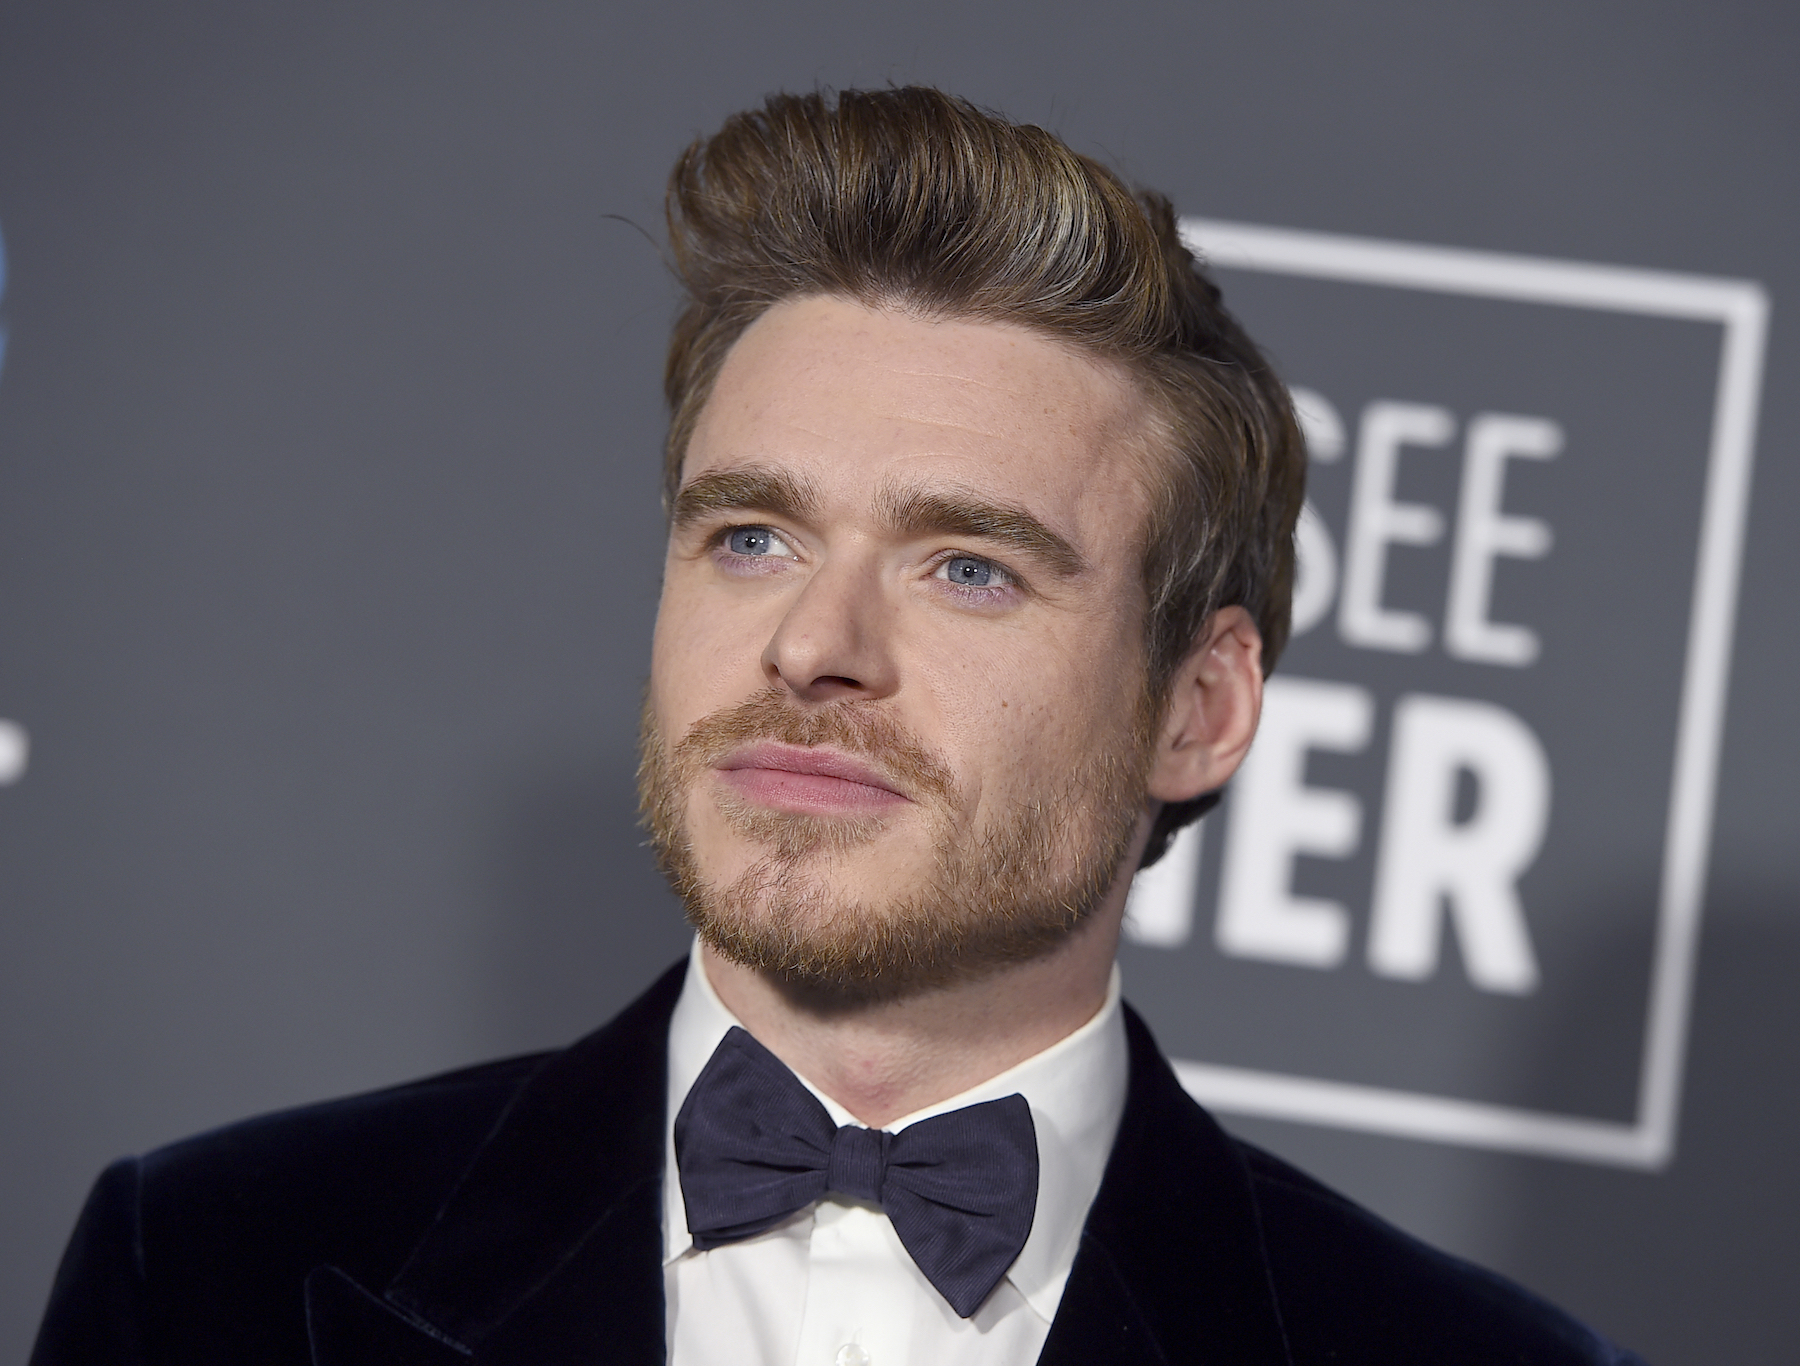 "<div class=""meta image-caption""><div class=""origin-logo origin-image ap""><span>AP</span></div><span class=""caption-text"">Richard Madden arrives at the 24th annual Critics' Choice Awards on Sunday, Jan. 13, 2019, at the Barker Hangar in Santa Monica, Calif. (Jordan Strauss/Invision/AP)</span></div>"